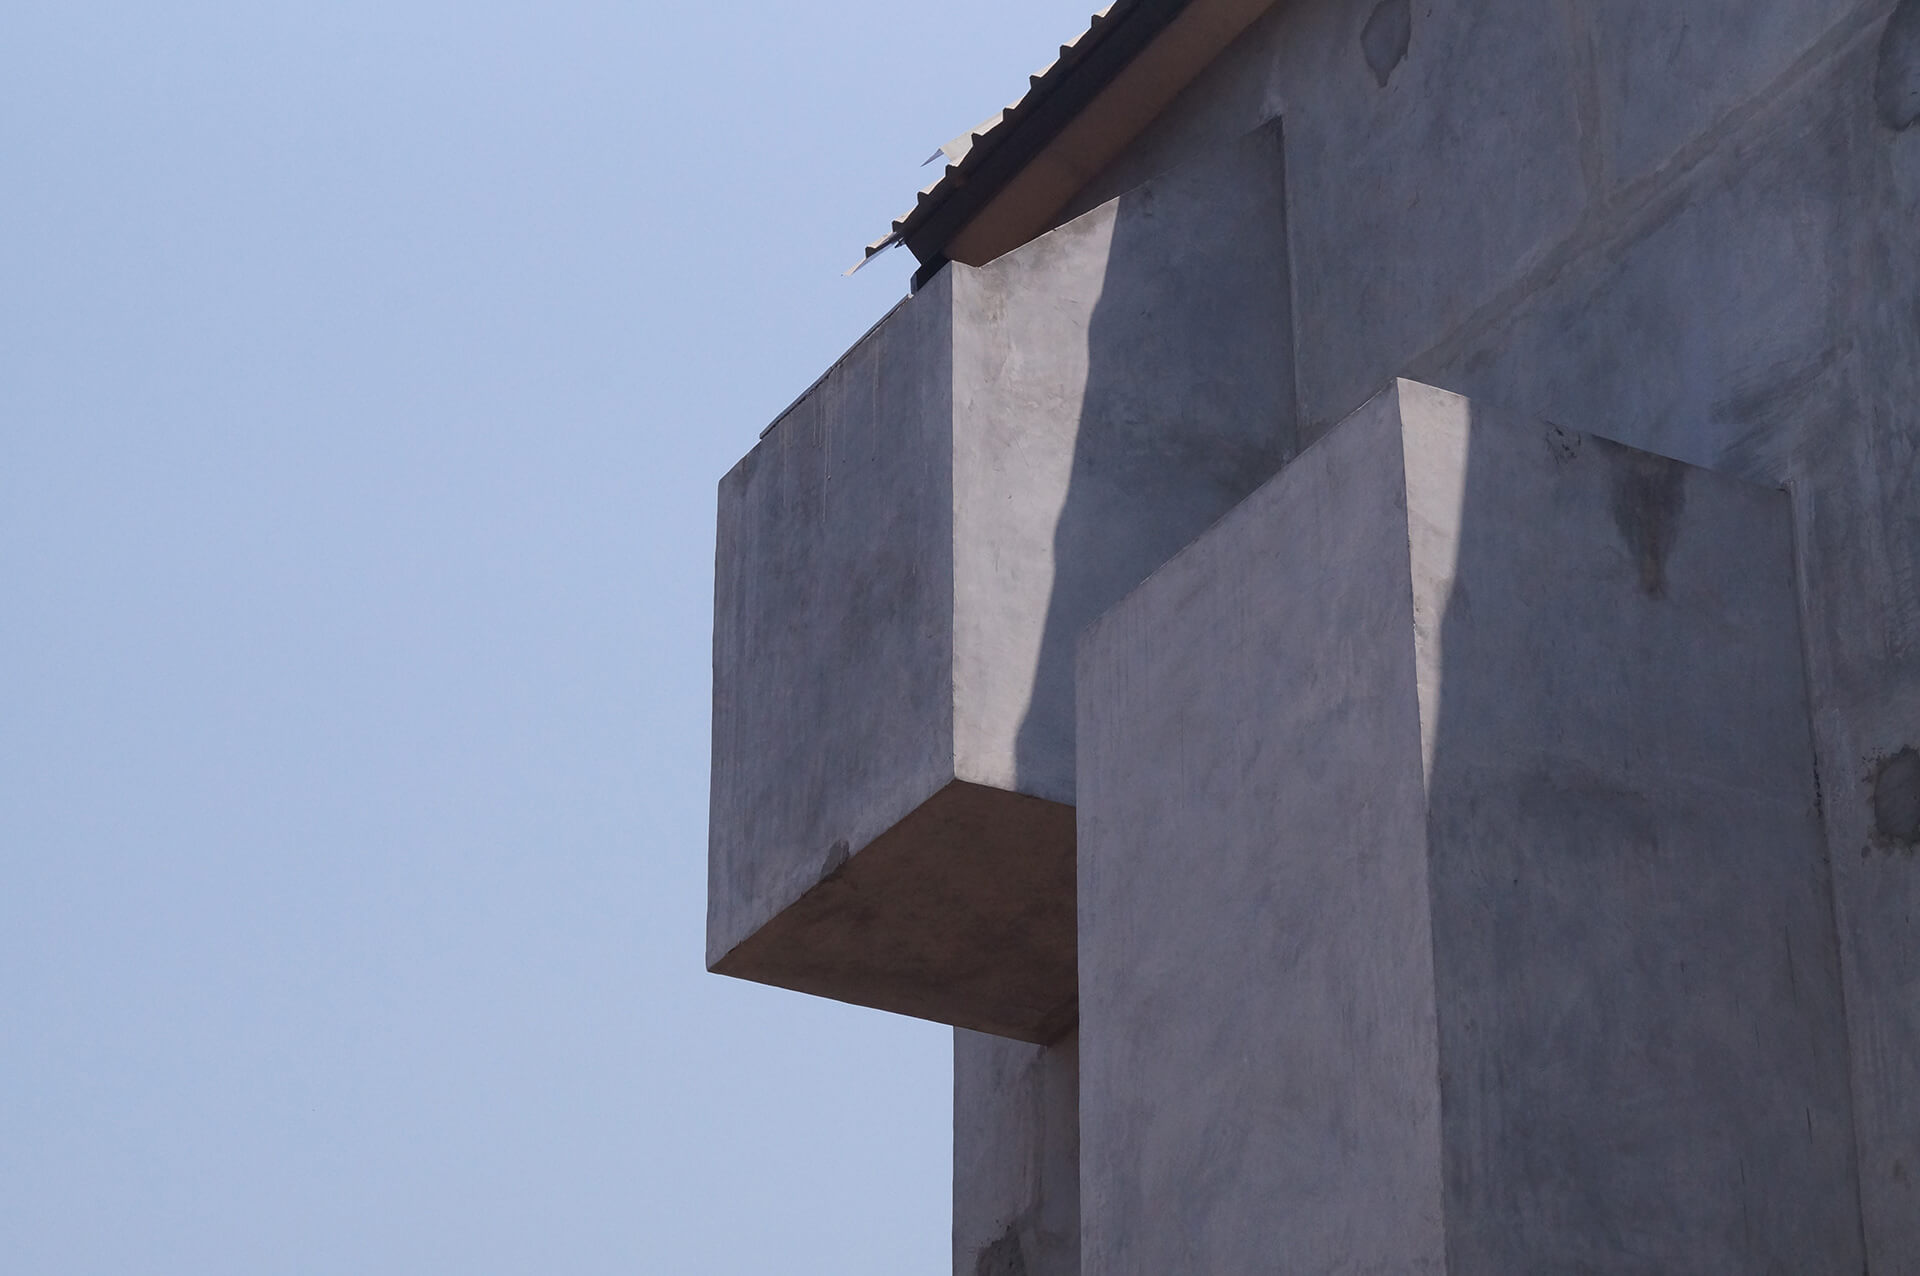 Cubical protrusions on the house's façade that have open to sky showers on the inside | Kokum House | Goa | STIRworld